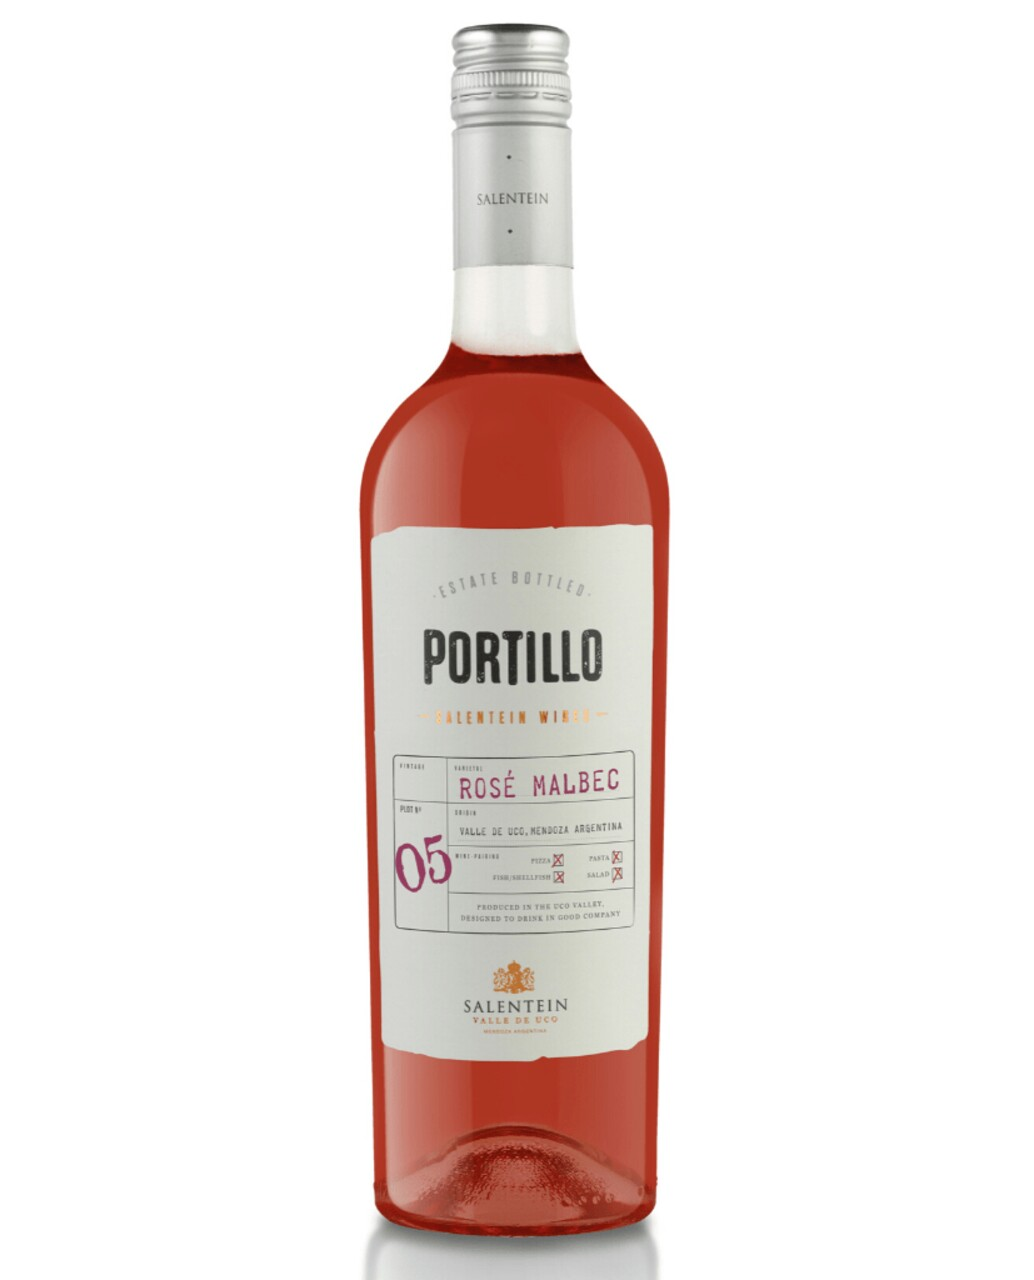 Portillo Rose Malbec